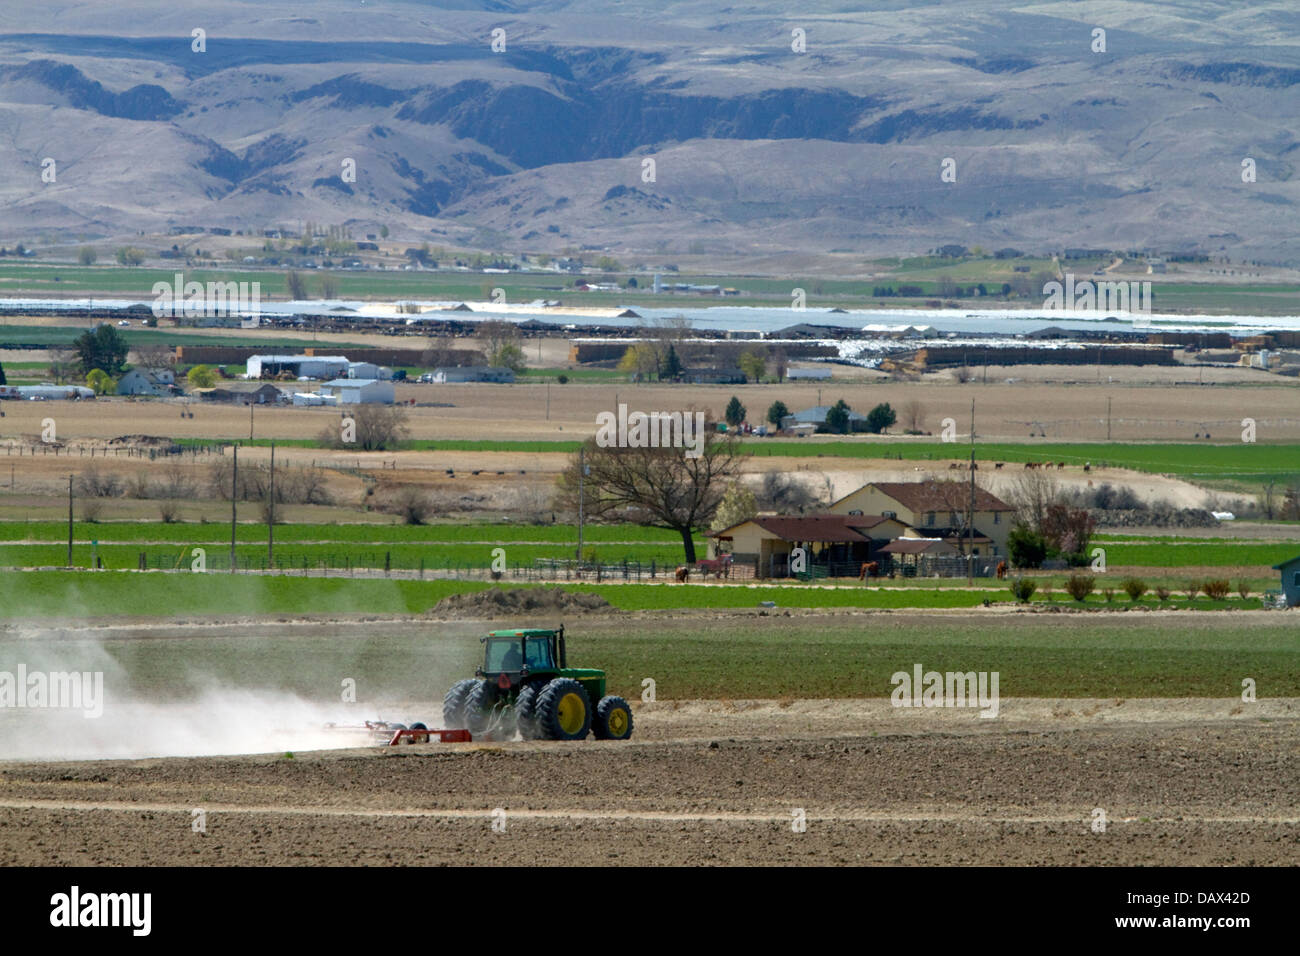 Tractor being used for spring tilling in Canyon County, Idaho, USA - Stock Image